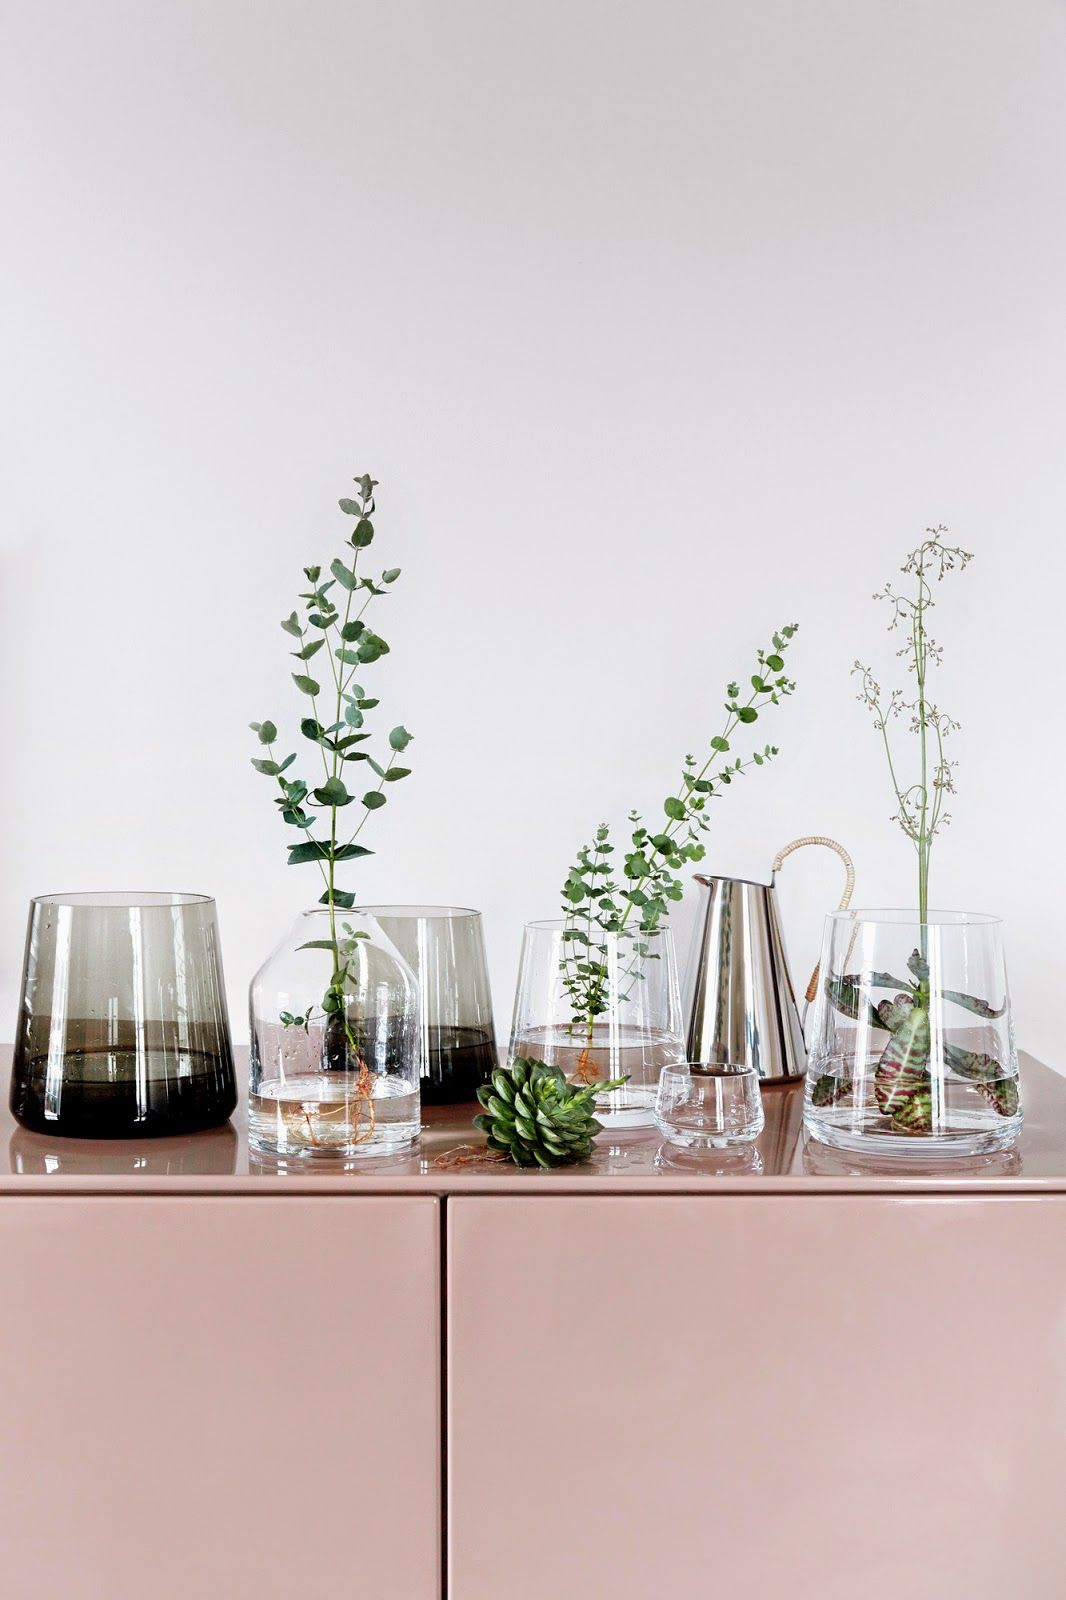 Home decor plants ideas  When pictures inspired me   Interiors Small space living and